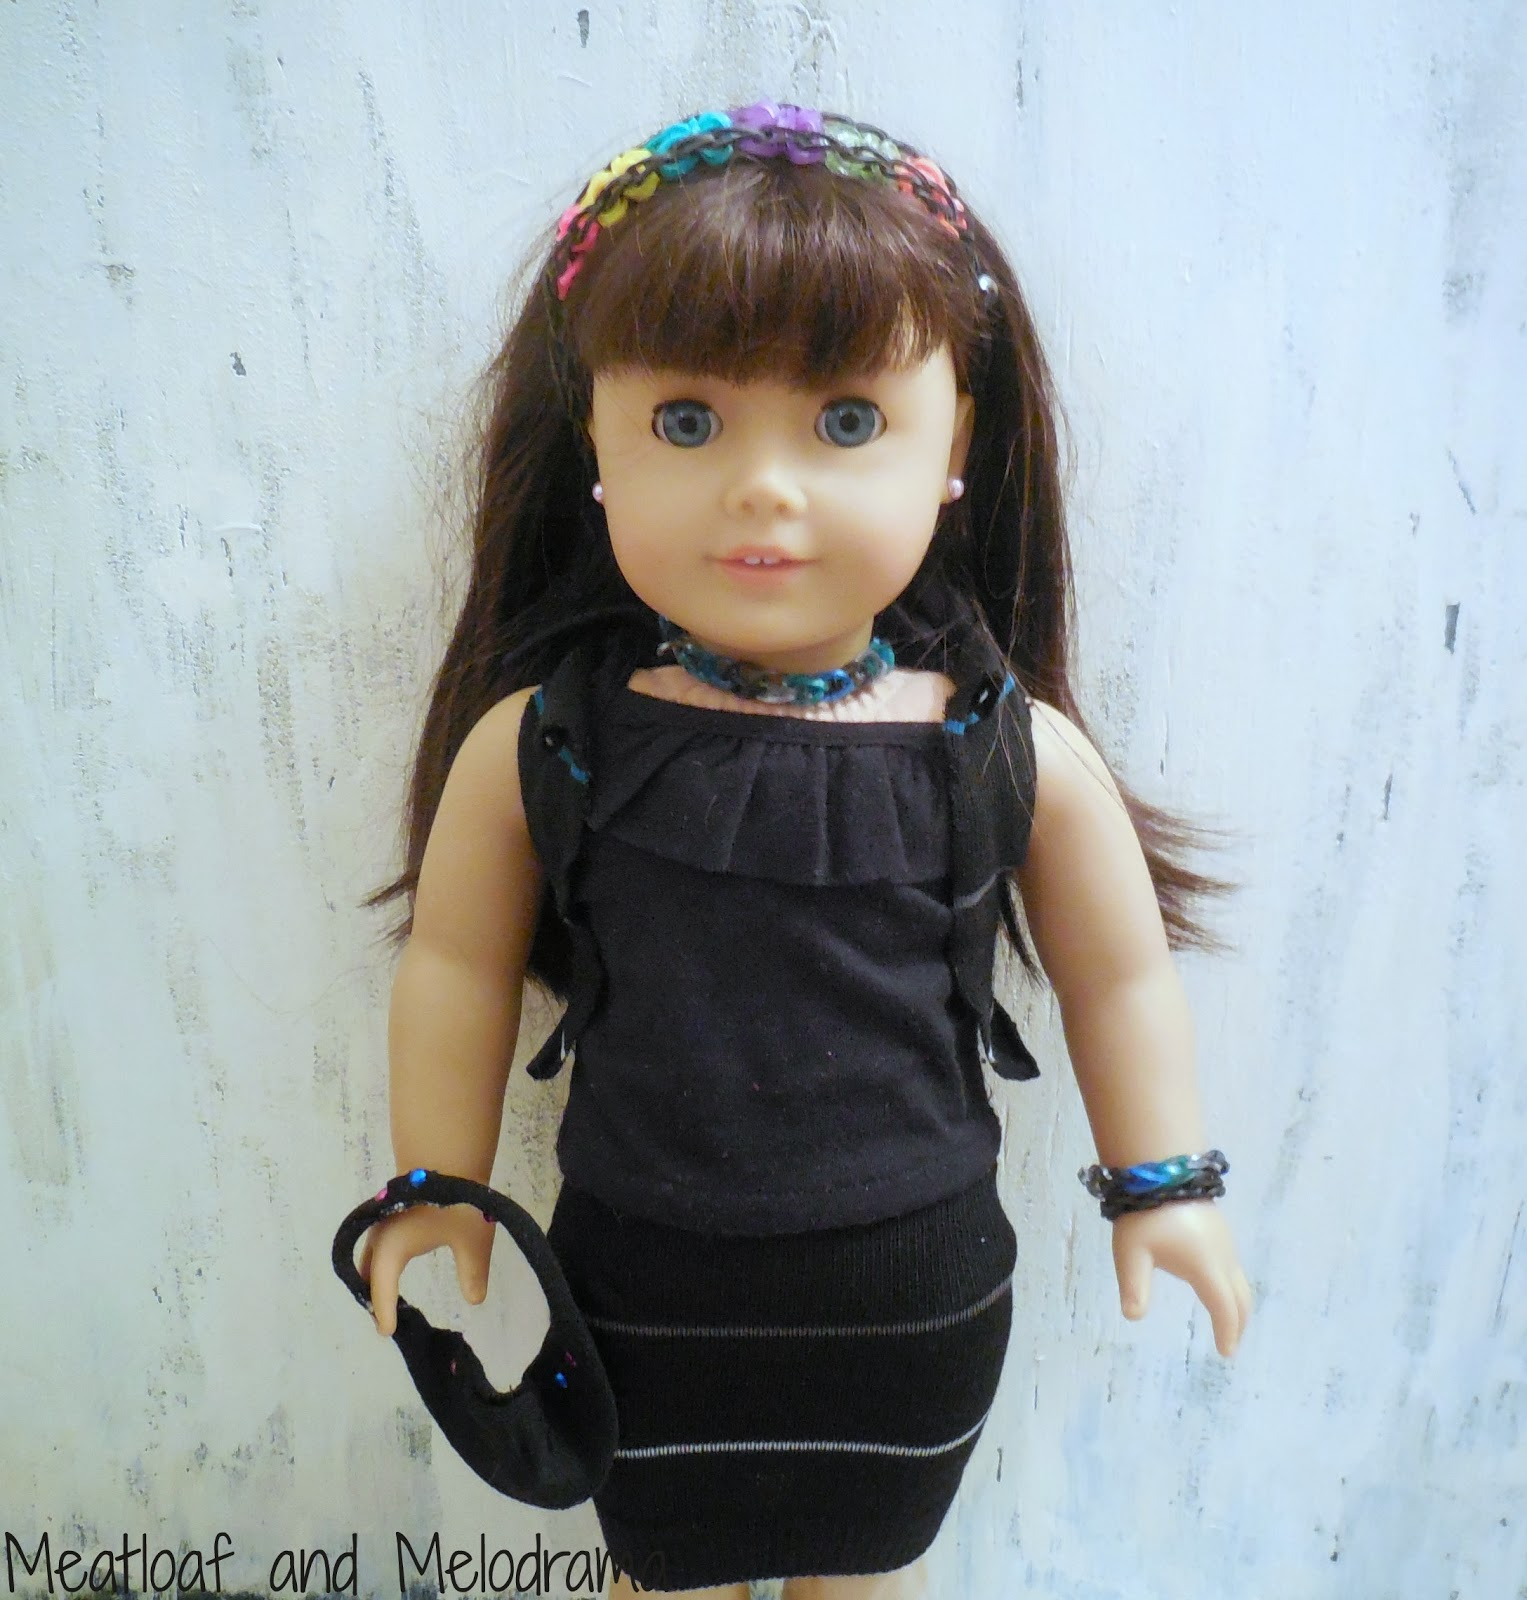 no sew American Girl Doll outfit from sock and rainbow loom bands